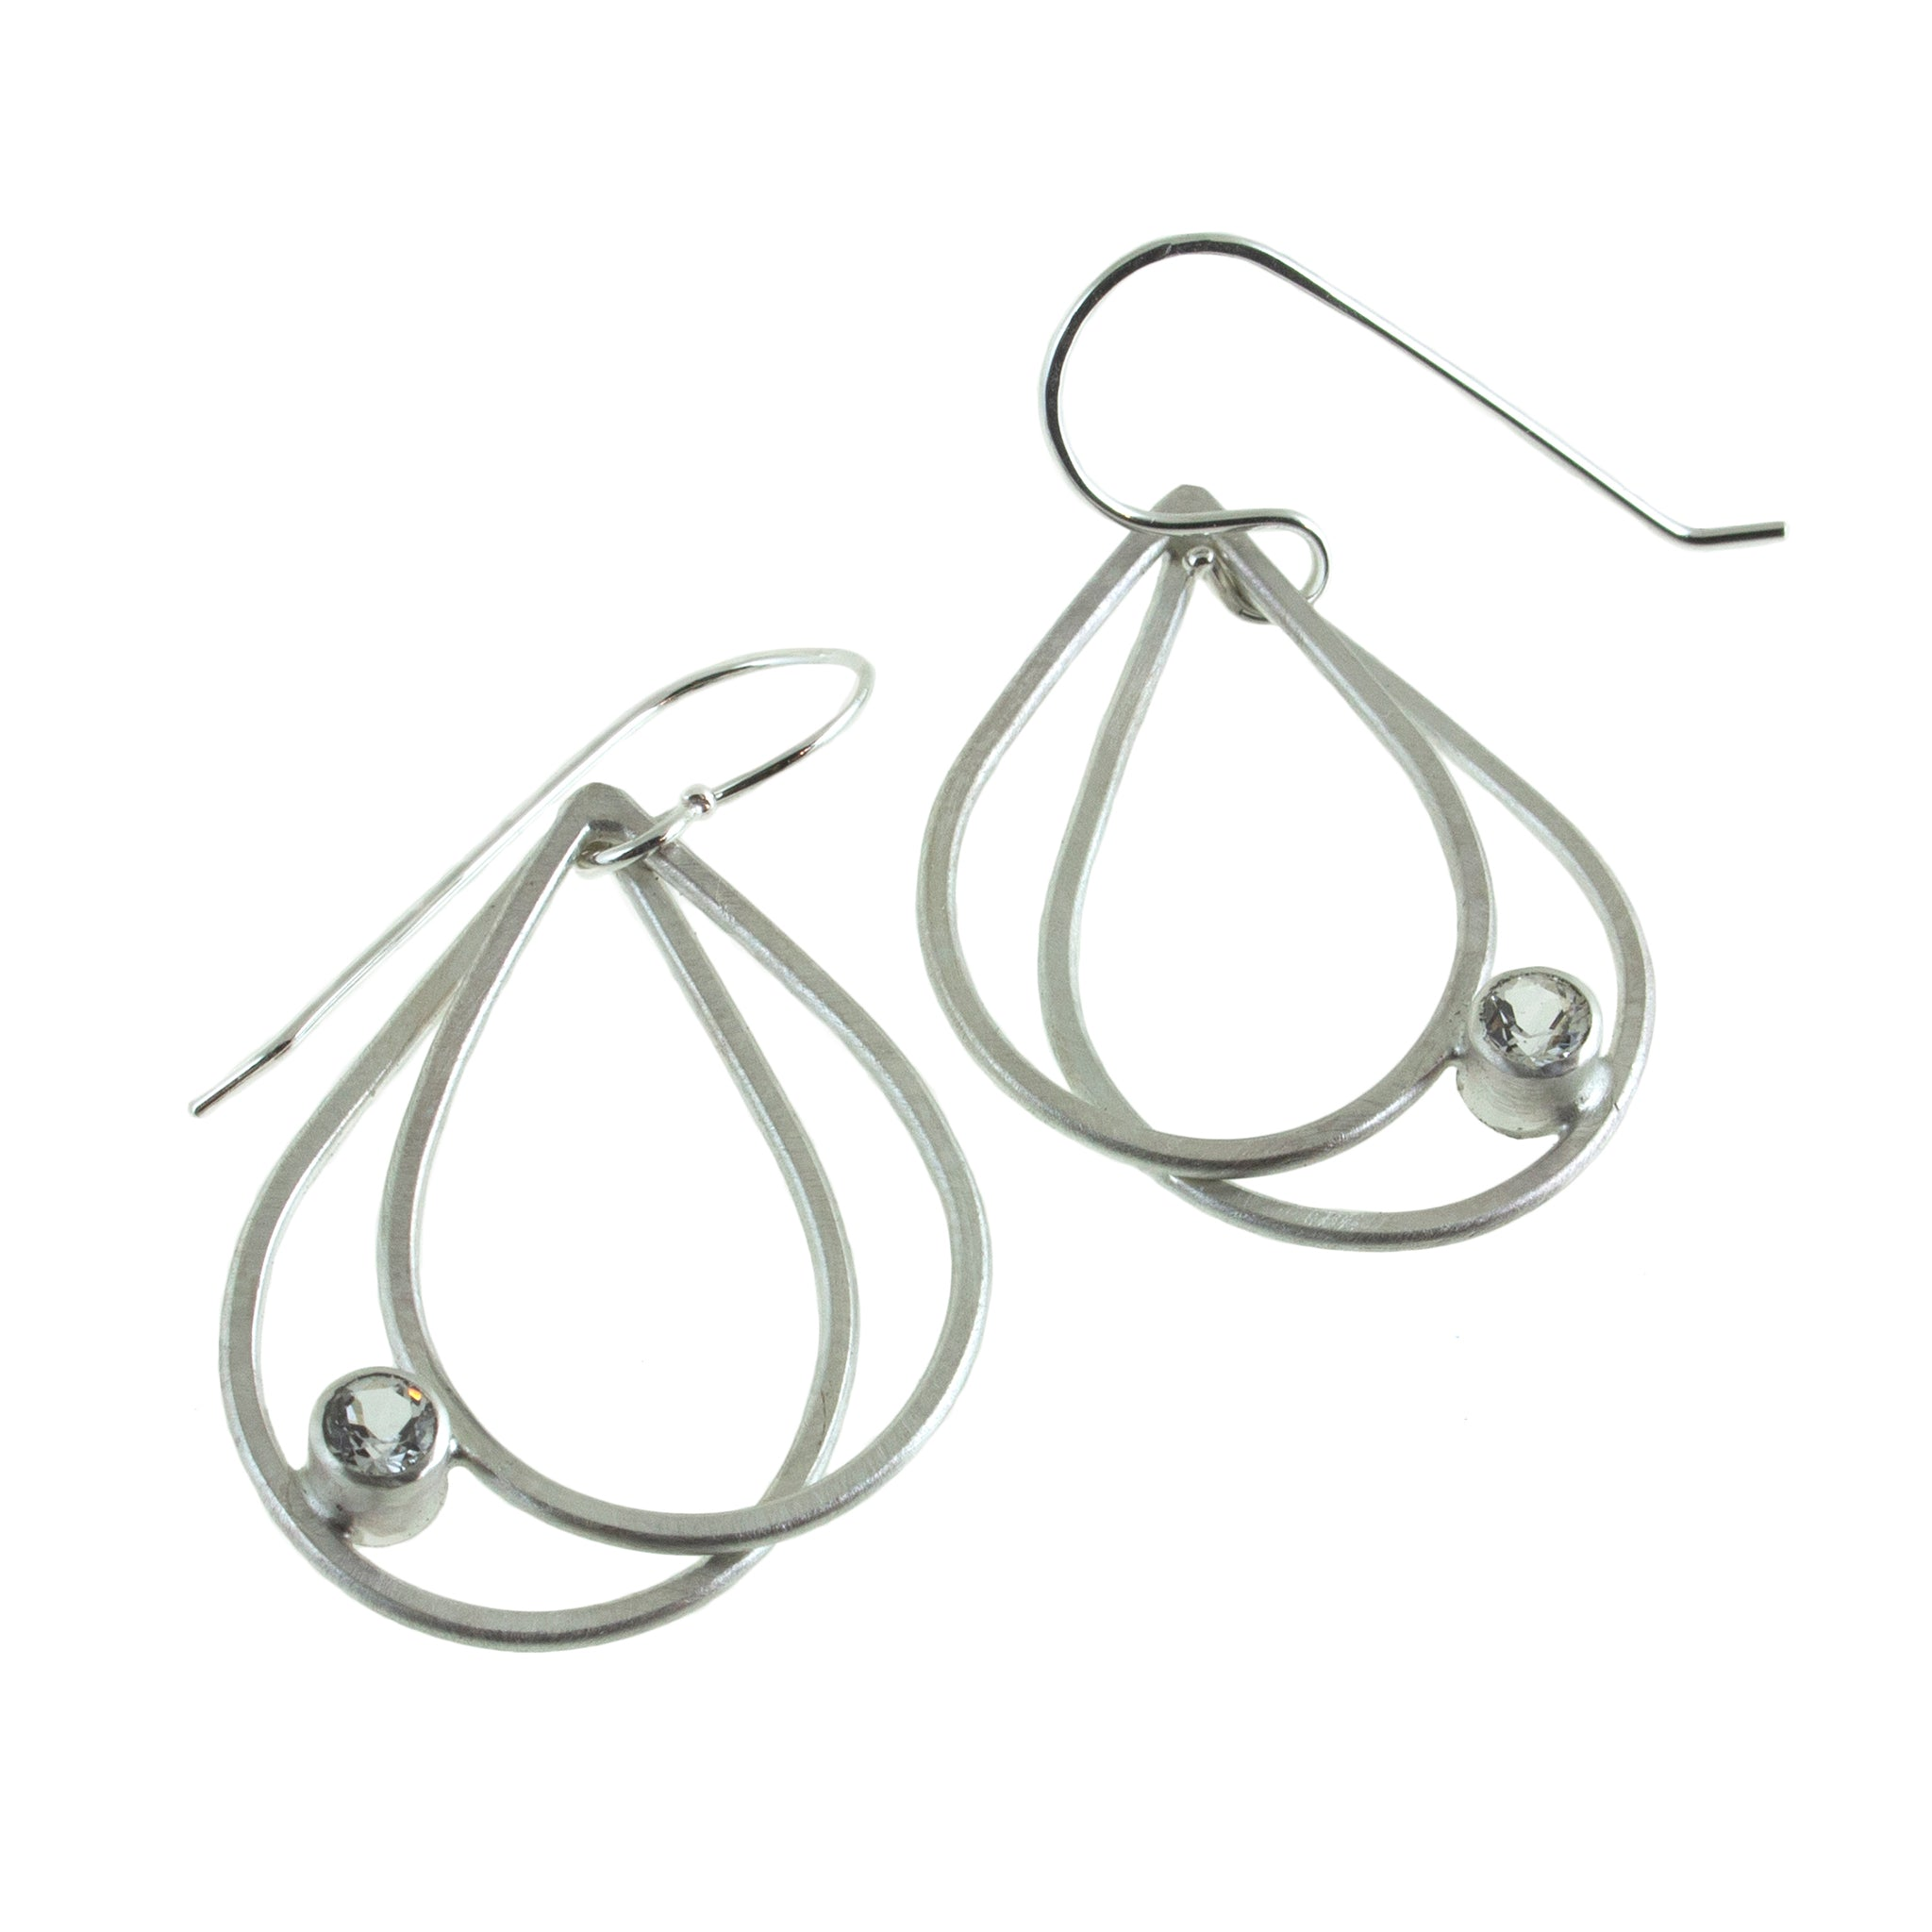 Sterling silver double teardrop earrings with gemstones by eko jewelry design, Germella